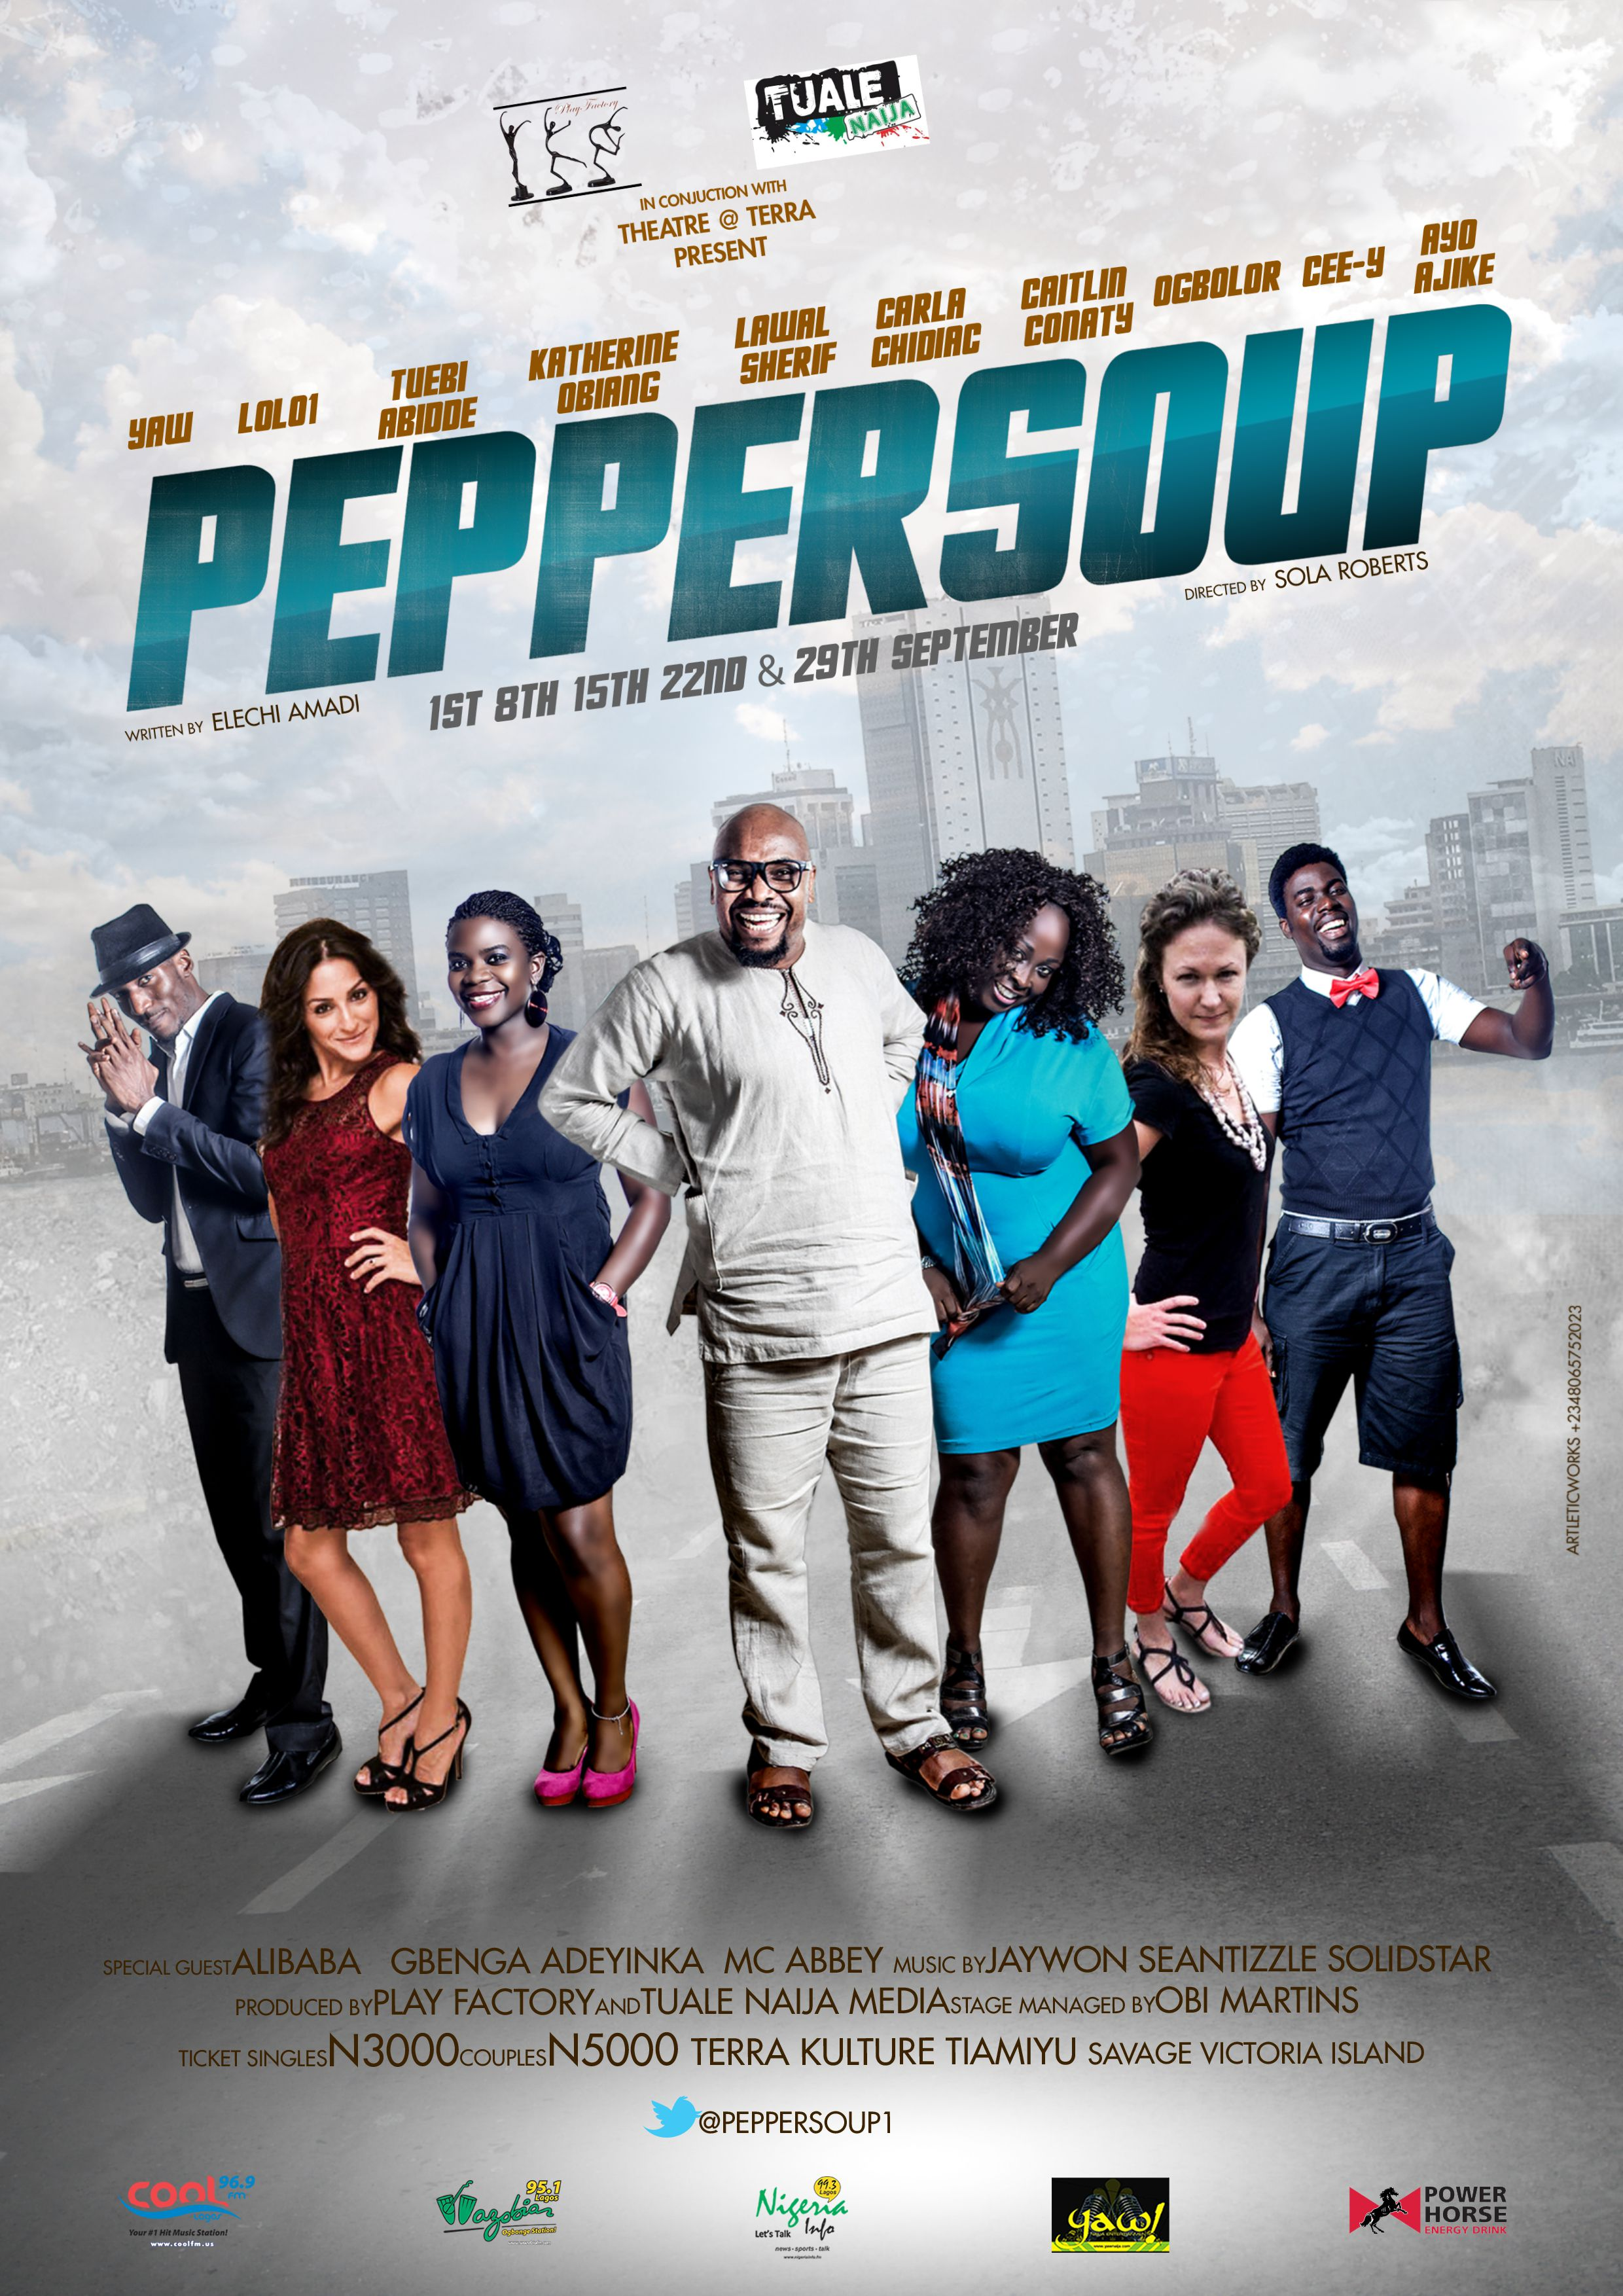 Yaw,Lolo,Katherine,Skeals To Star In Pepper Soup